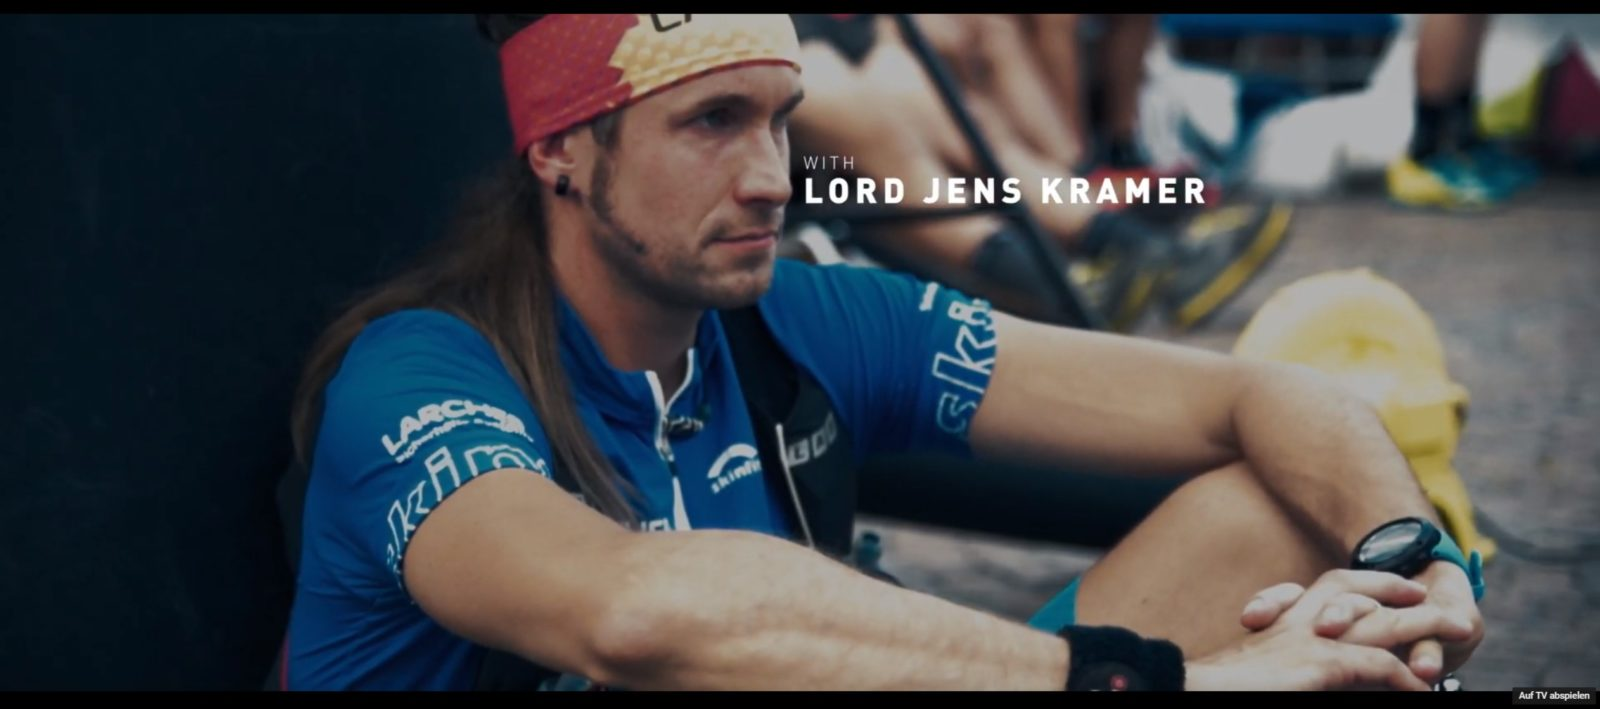 121KM Pain is for the Moment Glory is Forever I Sottotitoli Italiani - YouTube